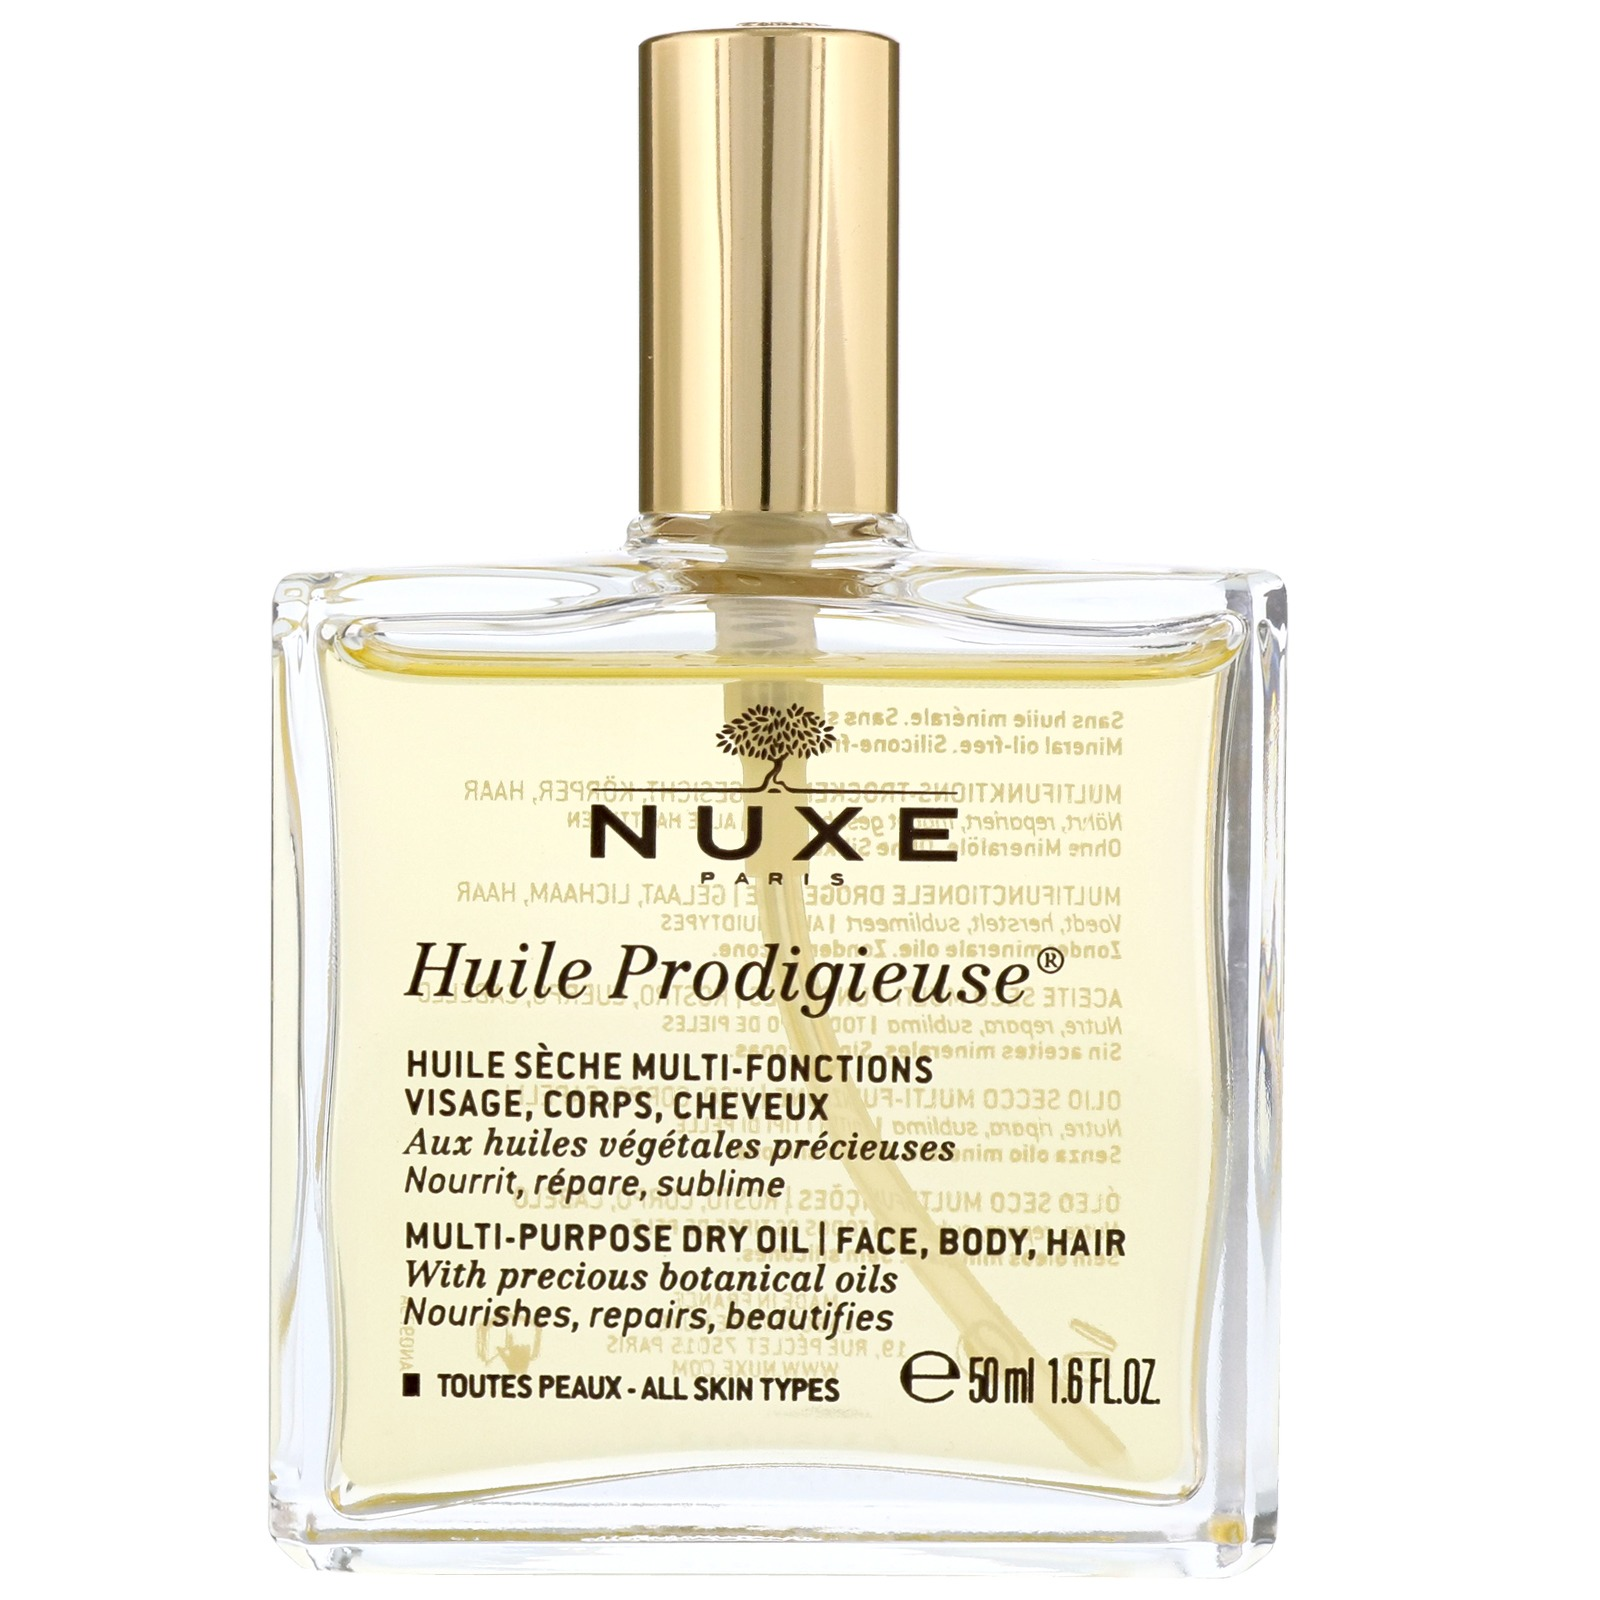 Nuxe Huile Prodigieuse Multi-Purpose Dry Oil Spray 50ml